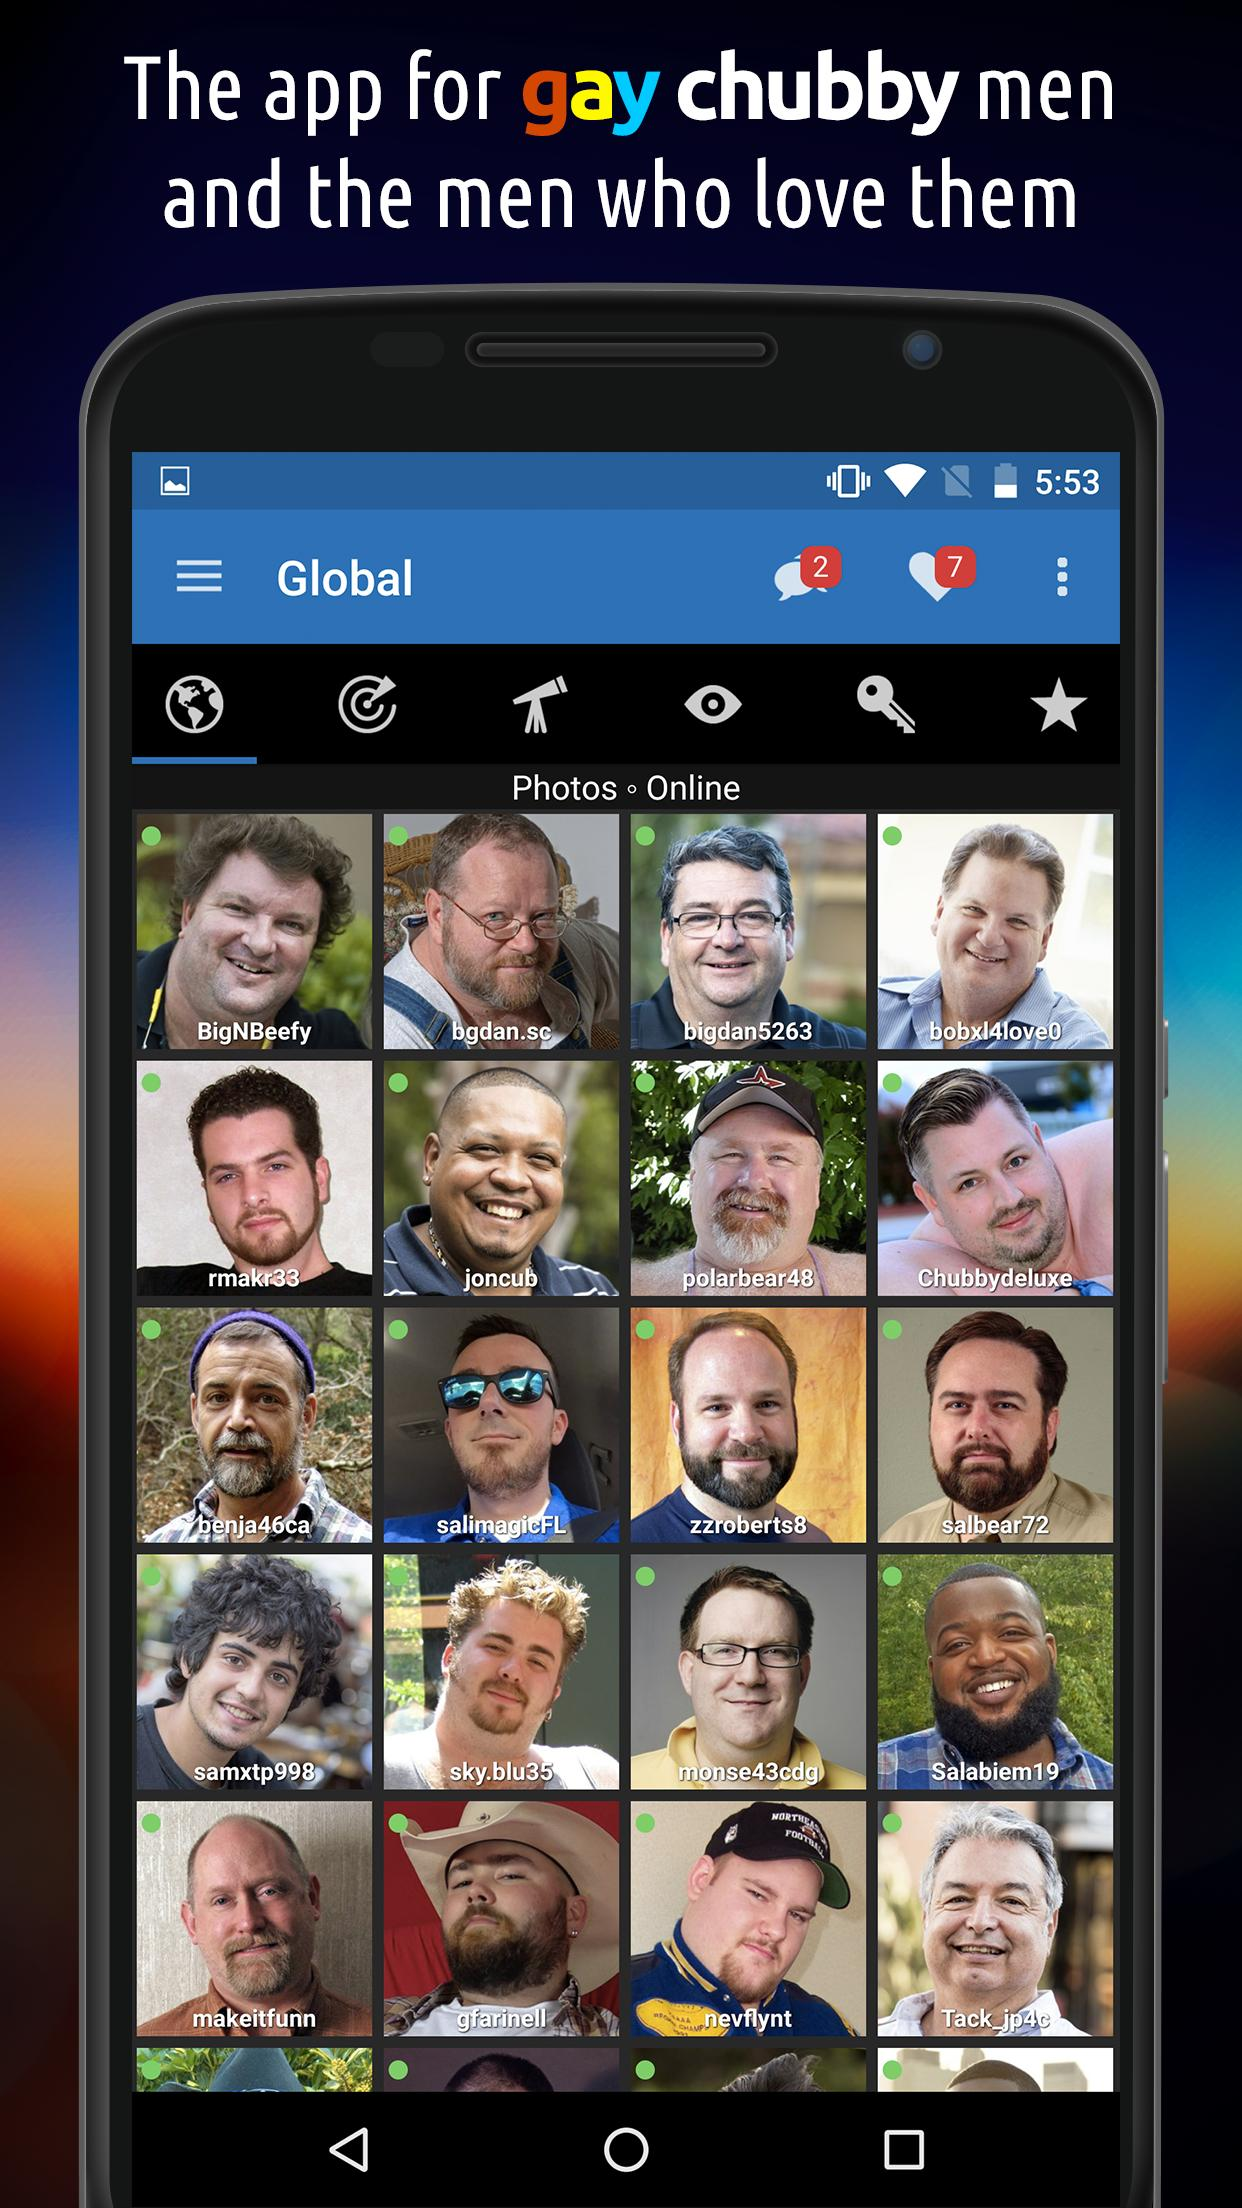 BiggerCity is a dating service for gay men of size(